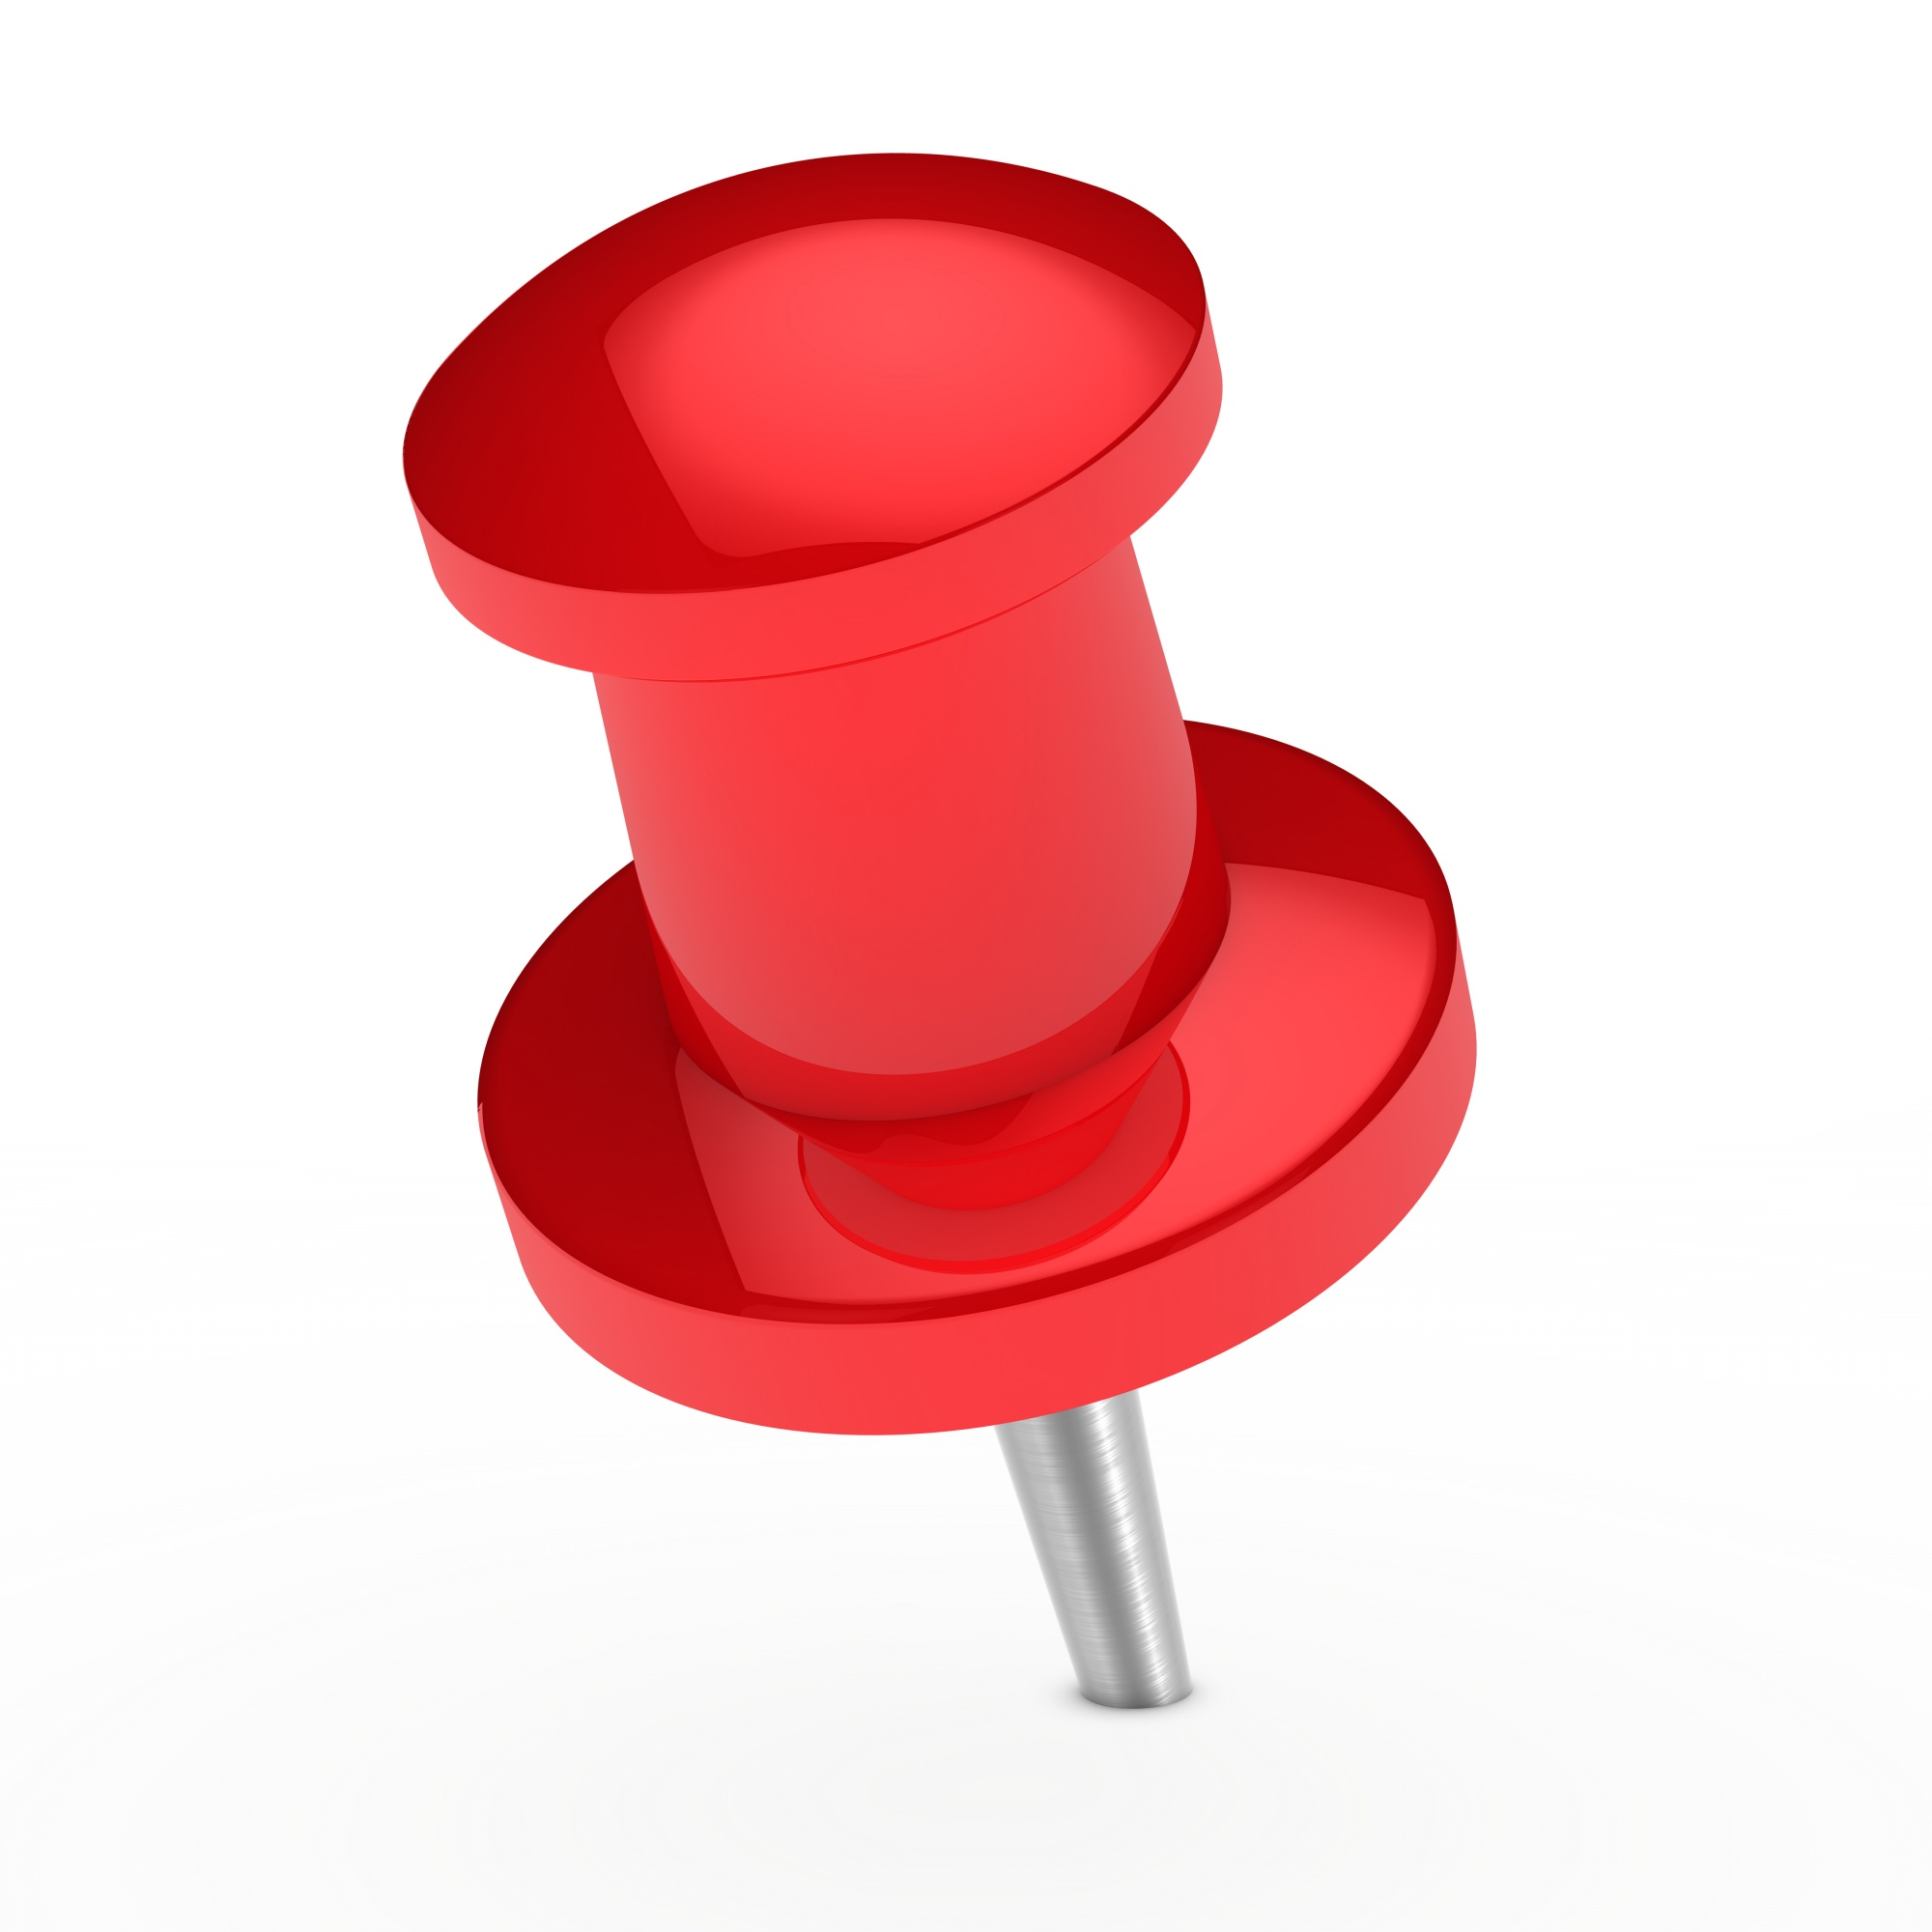 Red drawing pin